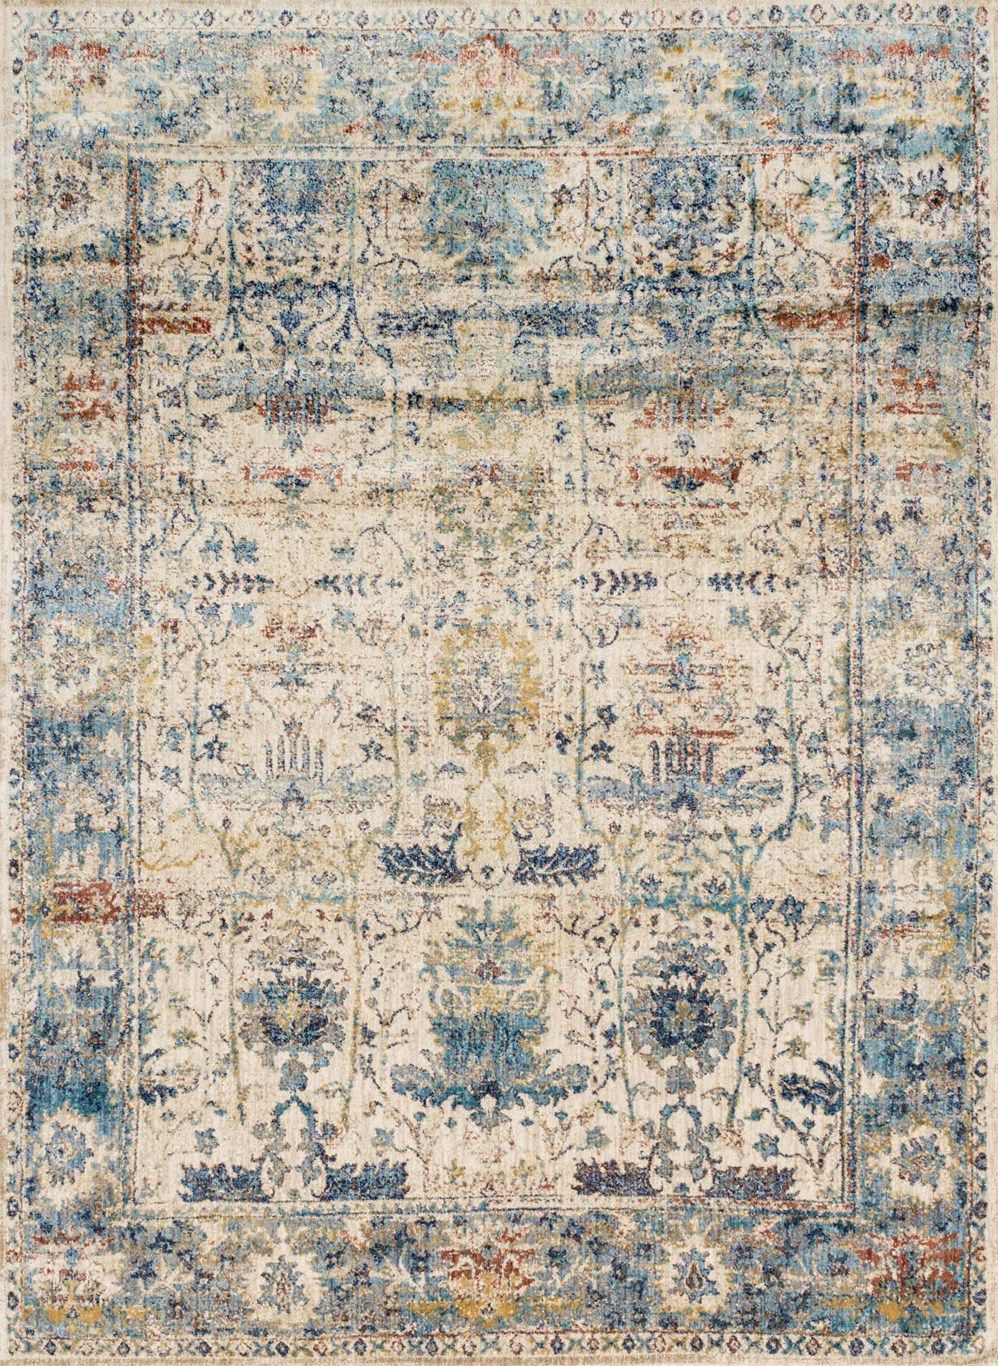 I Ve Obsessed Over This Rug New But Looks Centuries Old And Comes